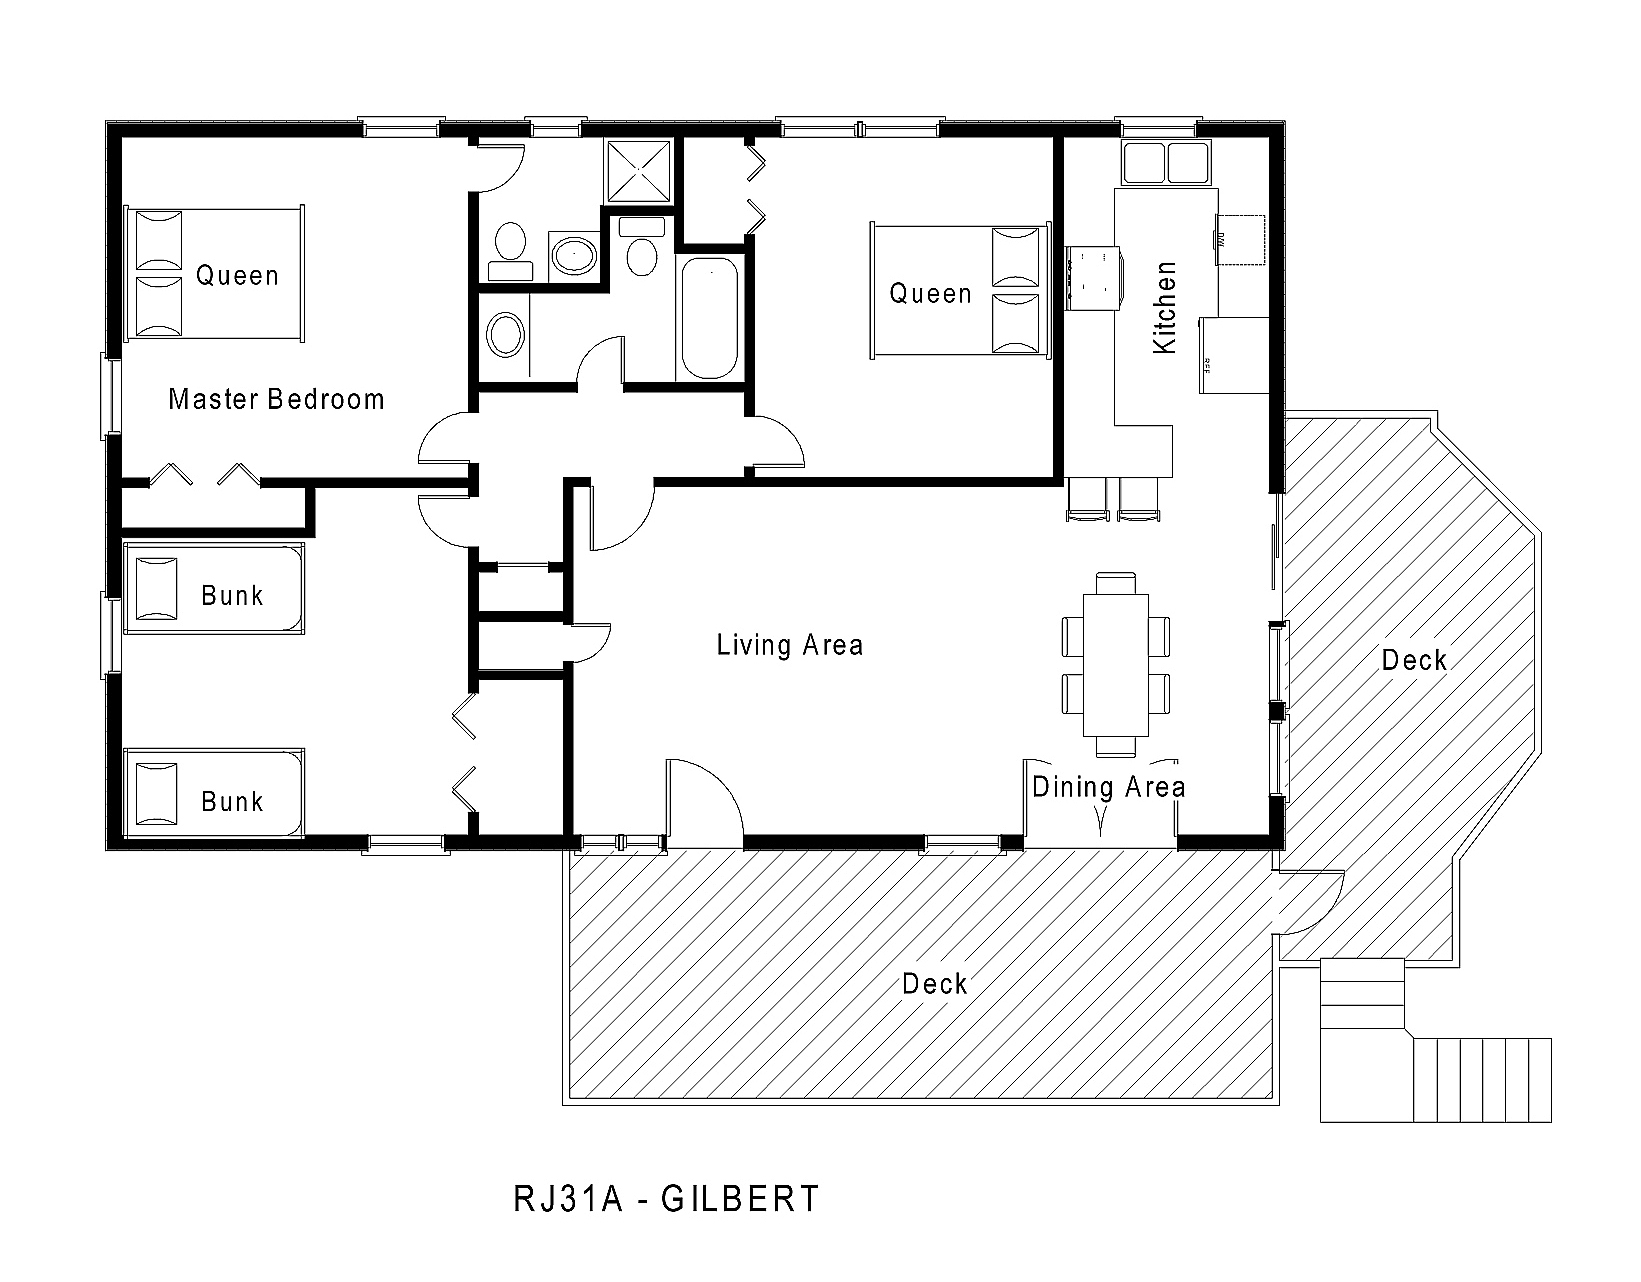 4 Bedroom House Plans One Story Bedroom Decor Plan 034h